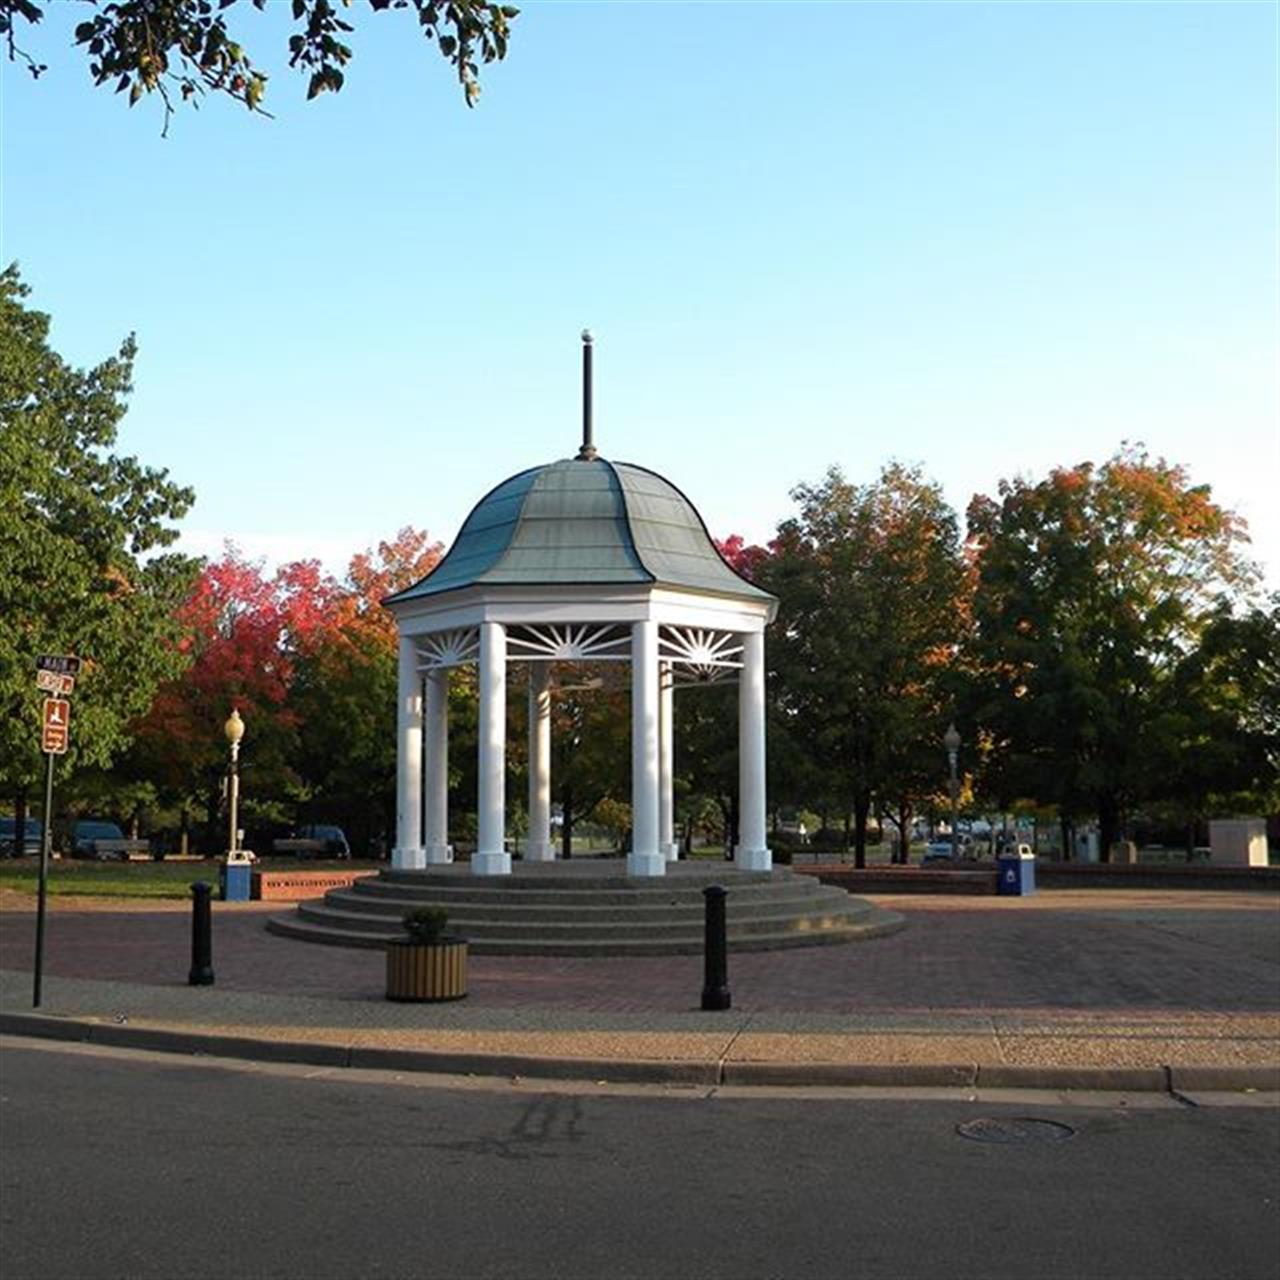 Town Square Gazebo, Main St in Front Royal, VA #leadingrelocal